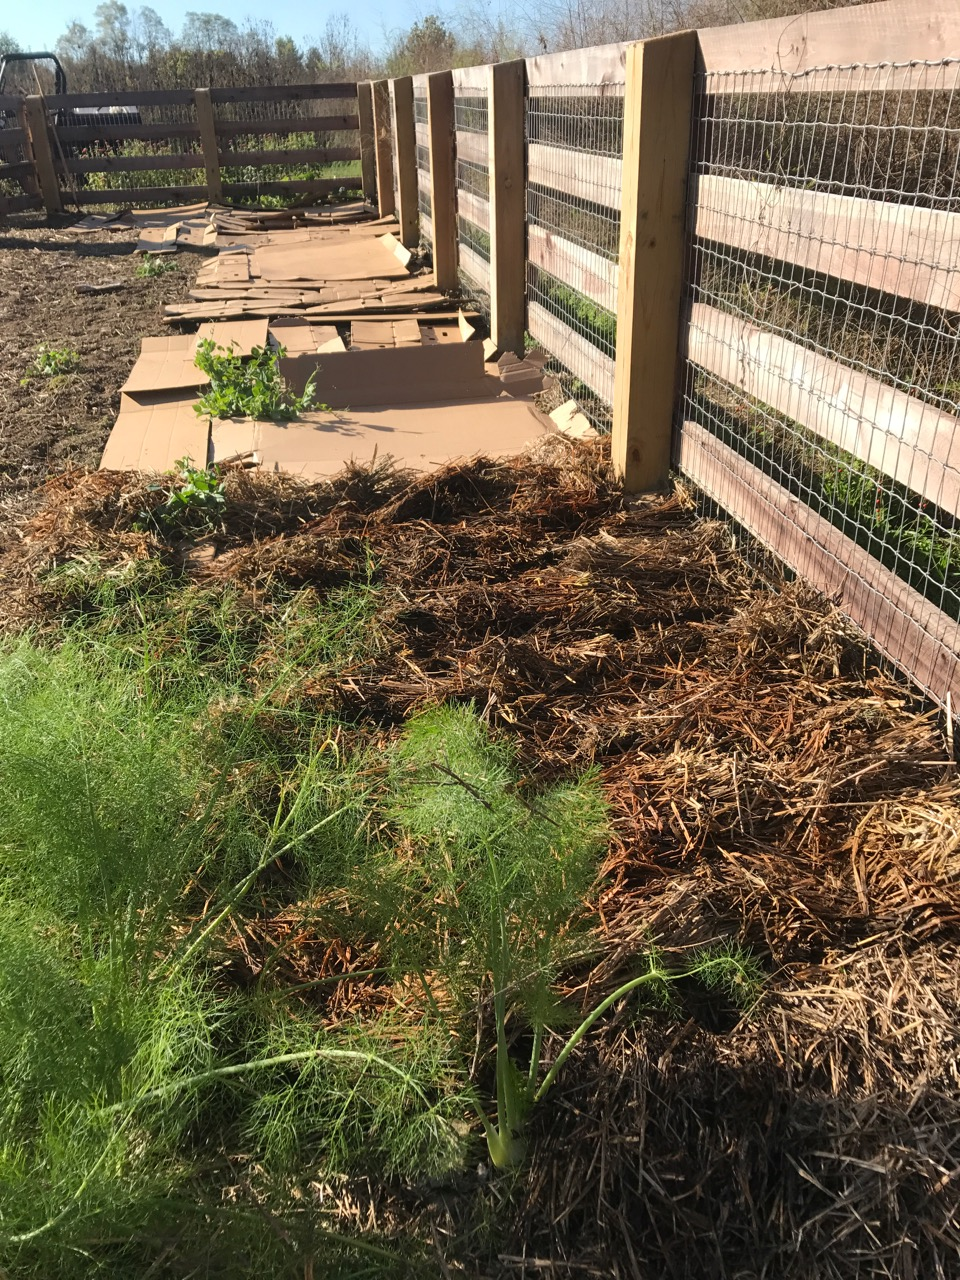 Farm Dover: Gardening Without Work – Ha!